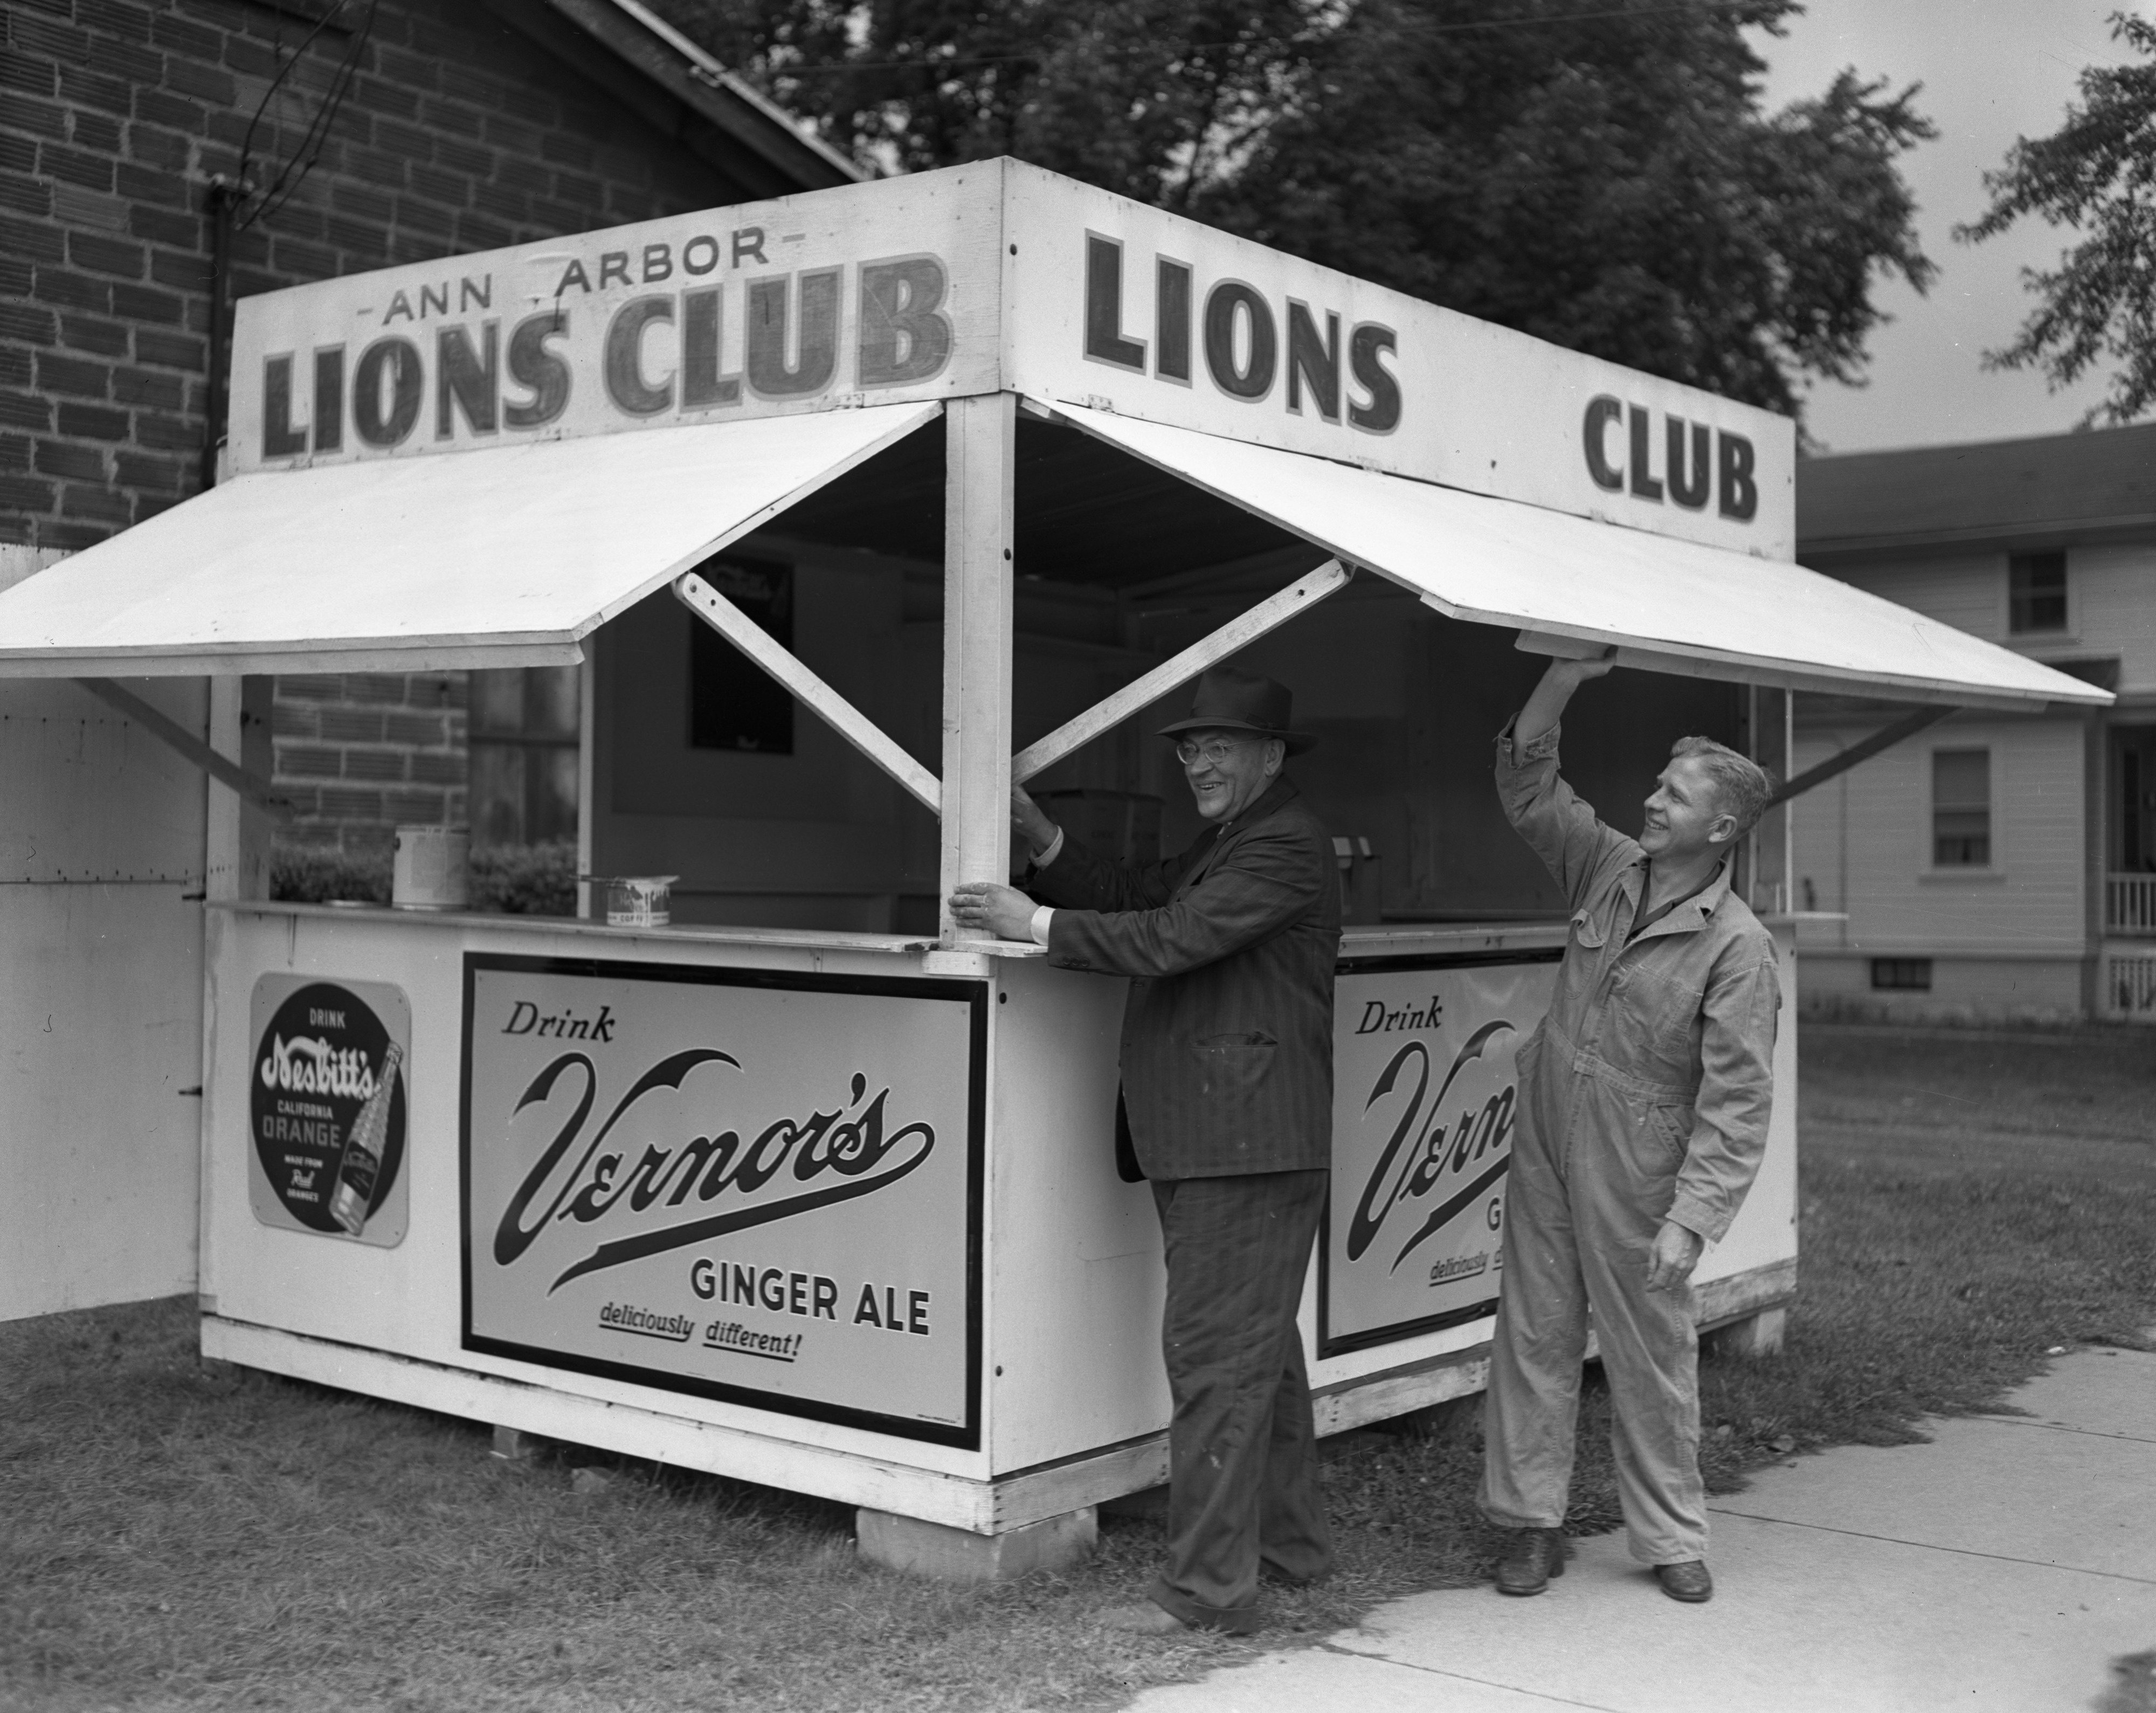 Ann Arbor Lions Club booth at Michigan Stadium, September 1951 image